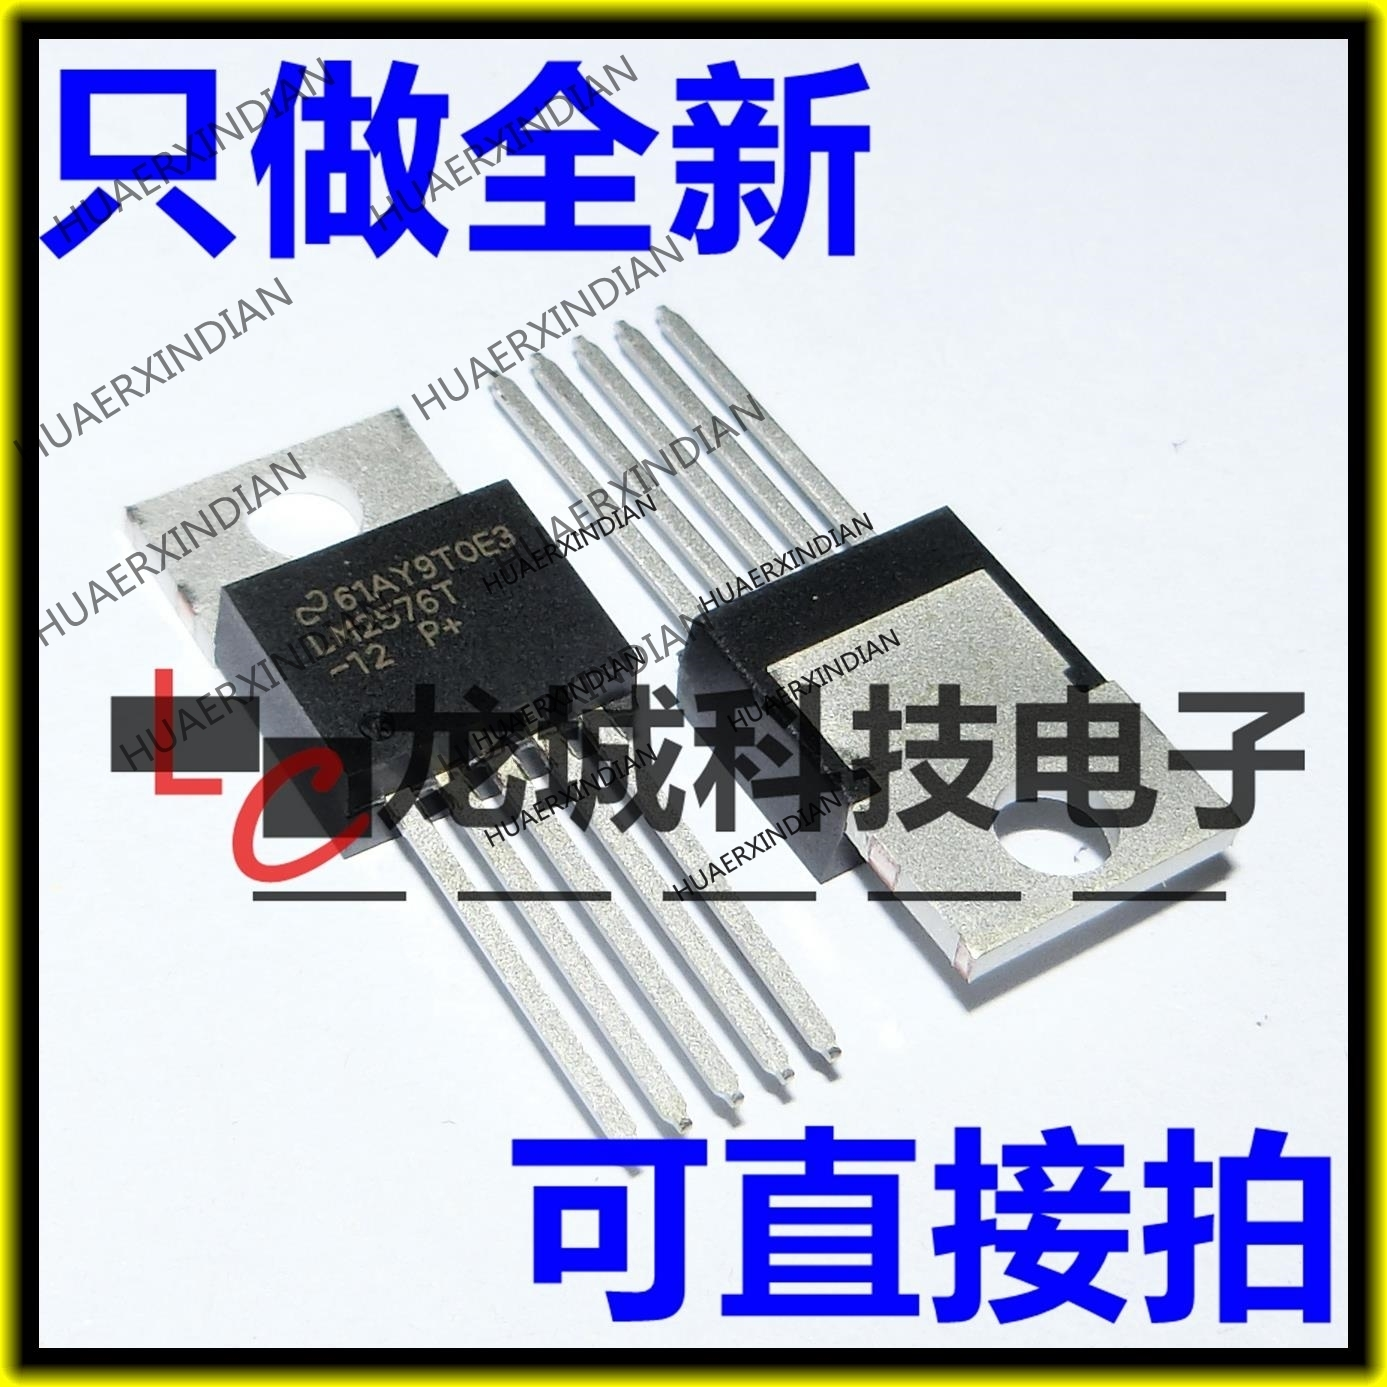 10PCS/LOT NEW LM2576T-<font><b>12</b></font> - DC DC <font><b>LM2576</b></font> TO-220-5 in stock image